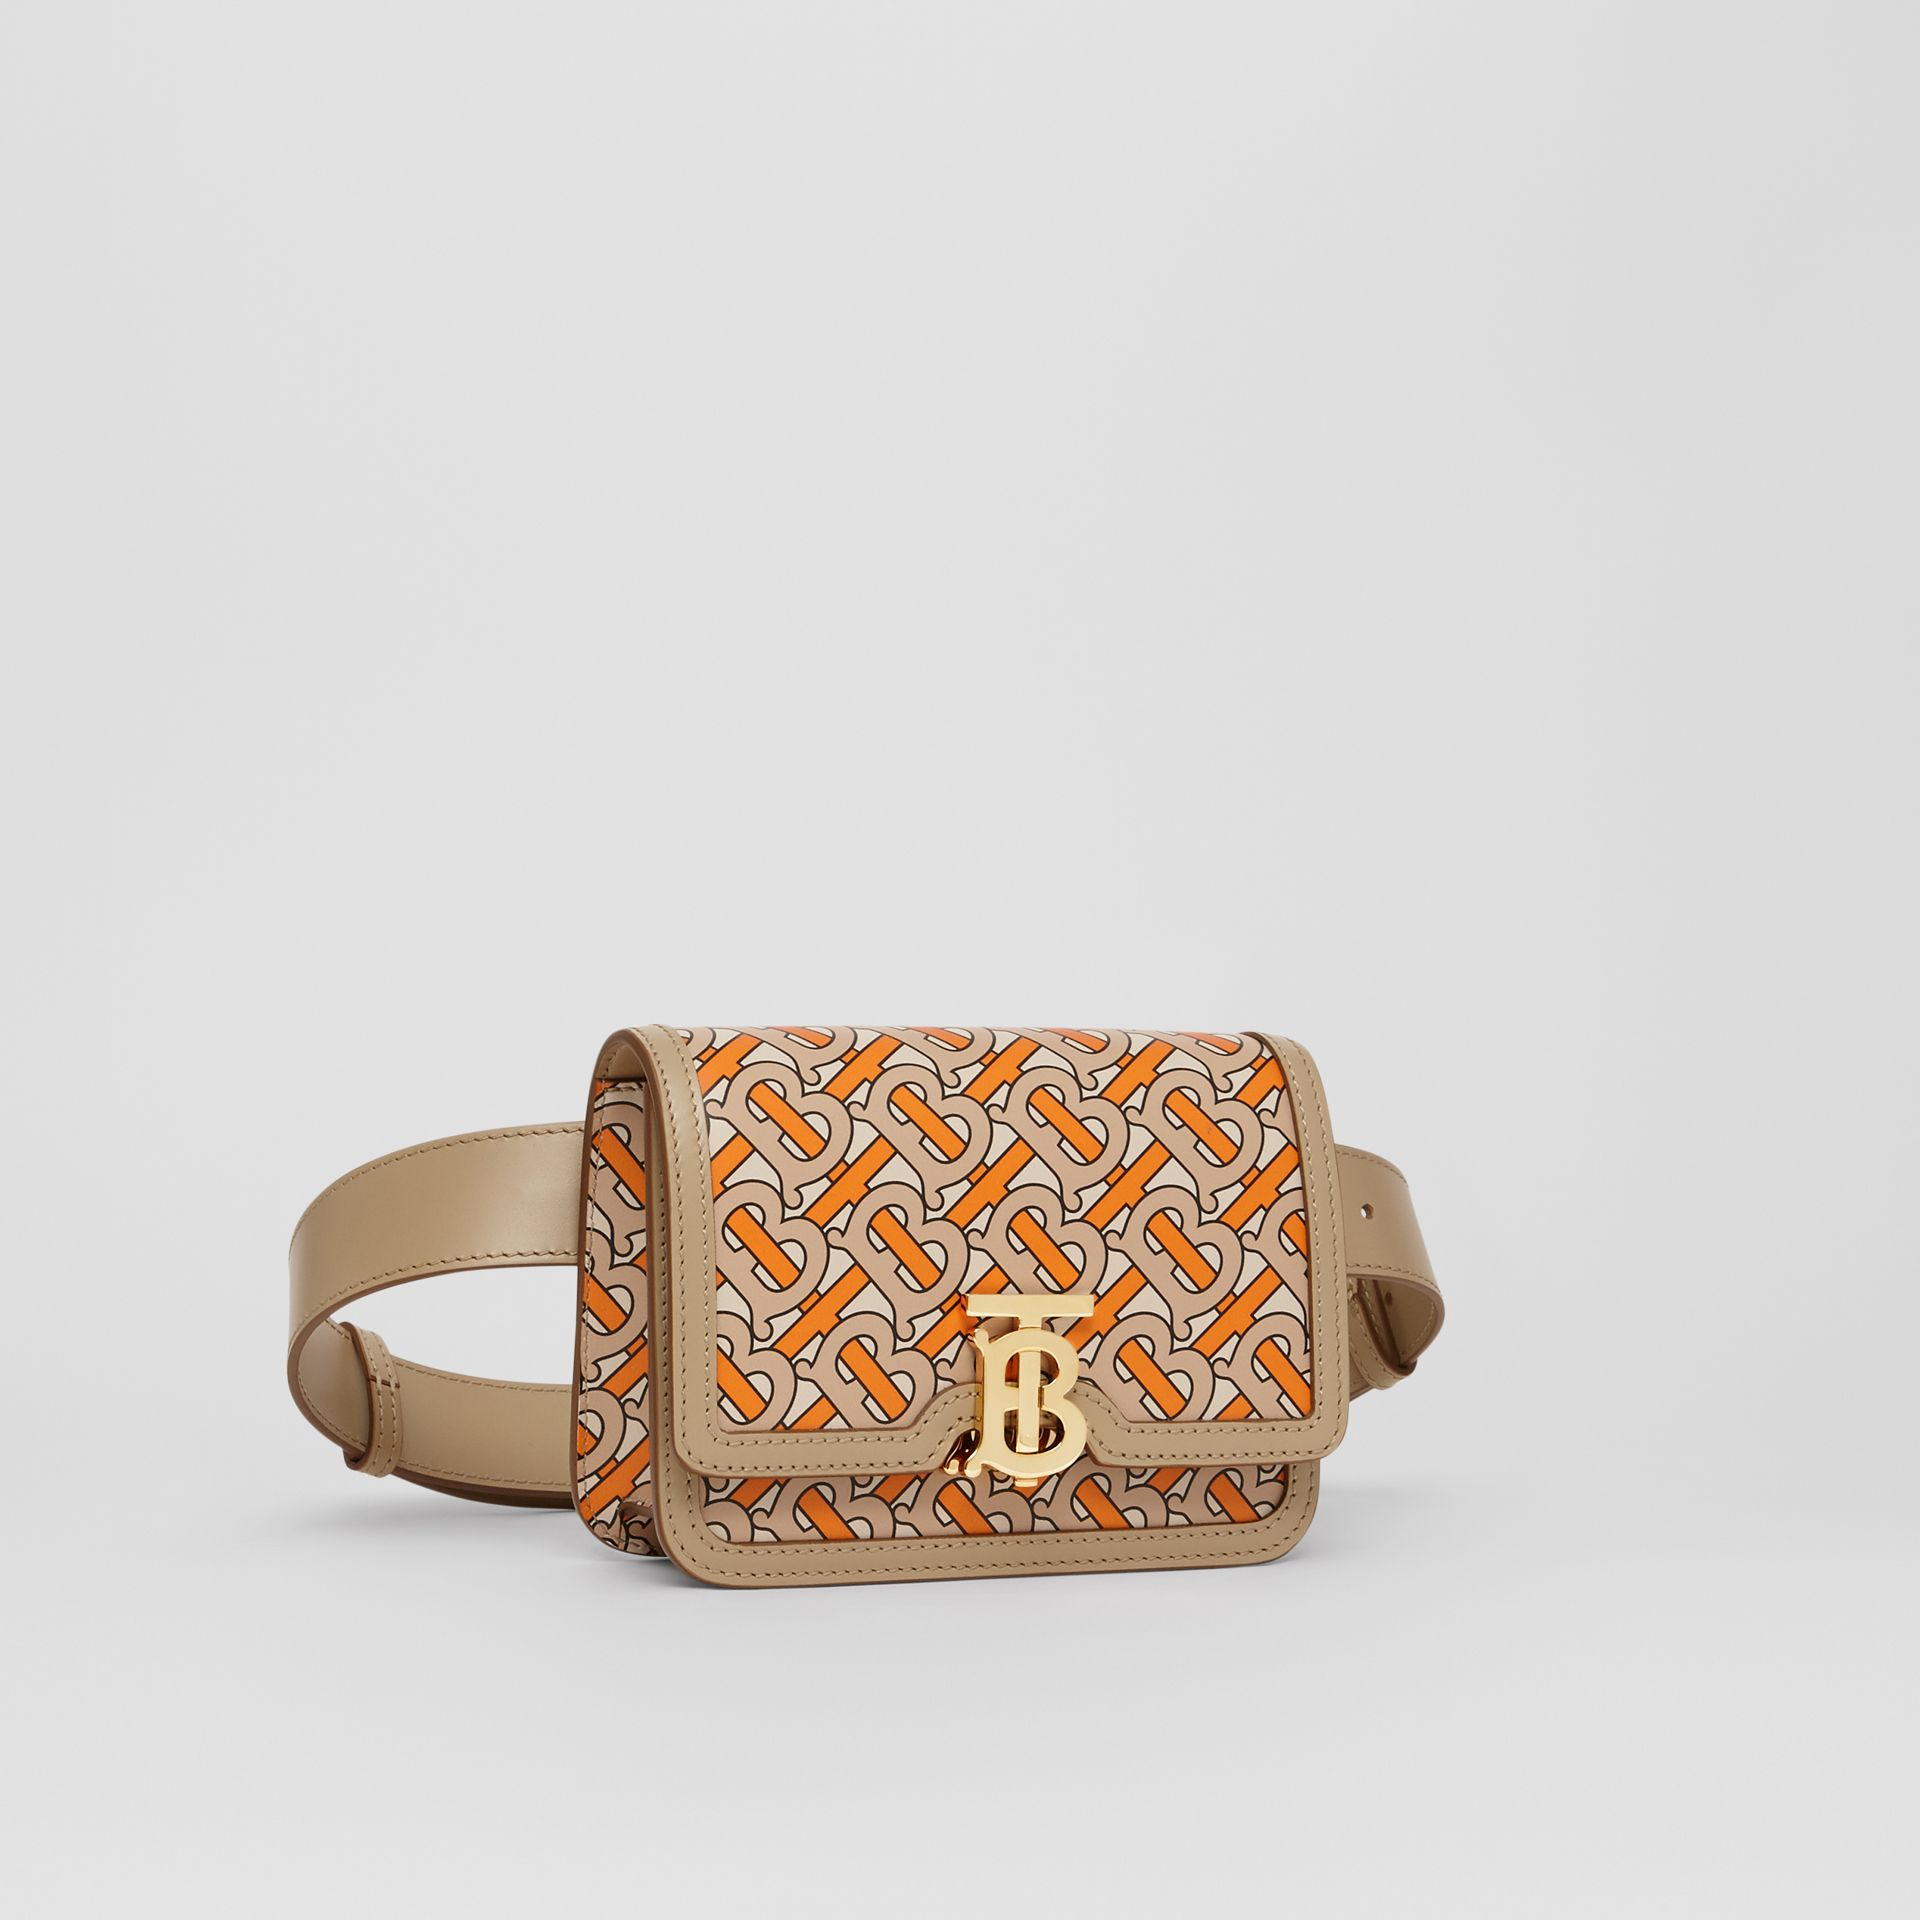 Belted Monogram Print Leather TB Bag in Bright Orange - Women | Burberry Singapore - gallery image 5